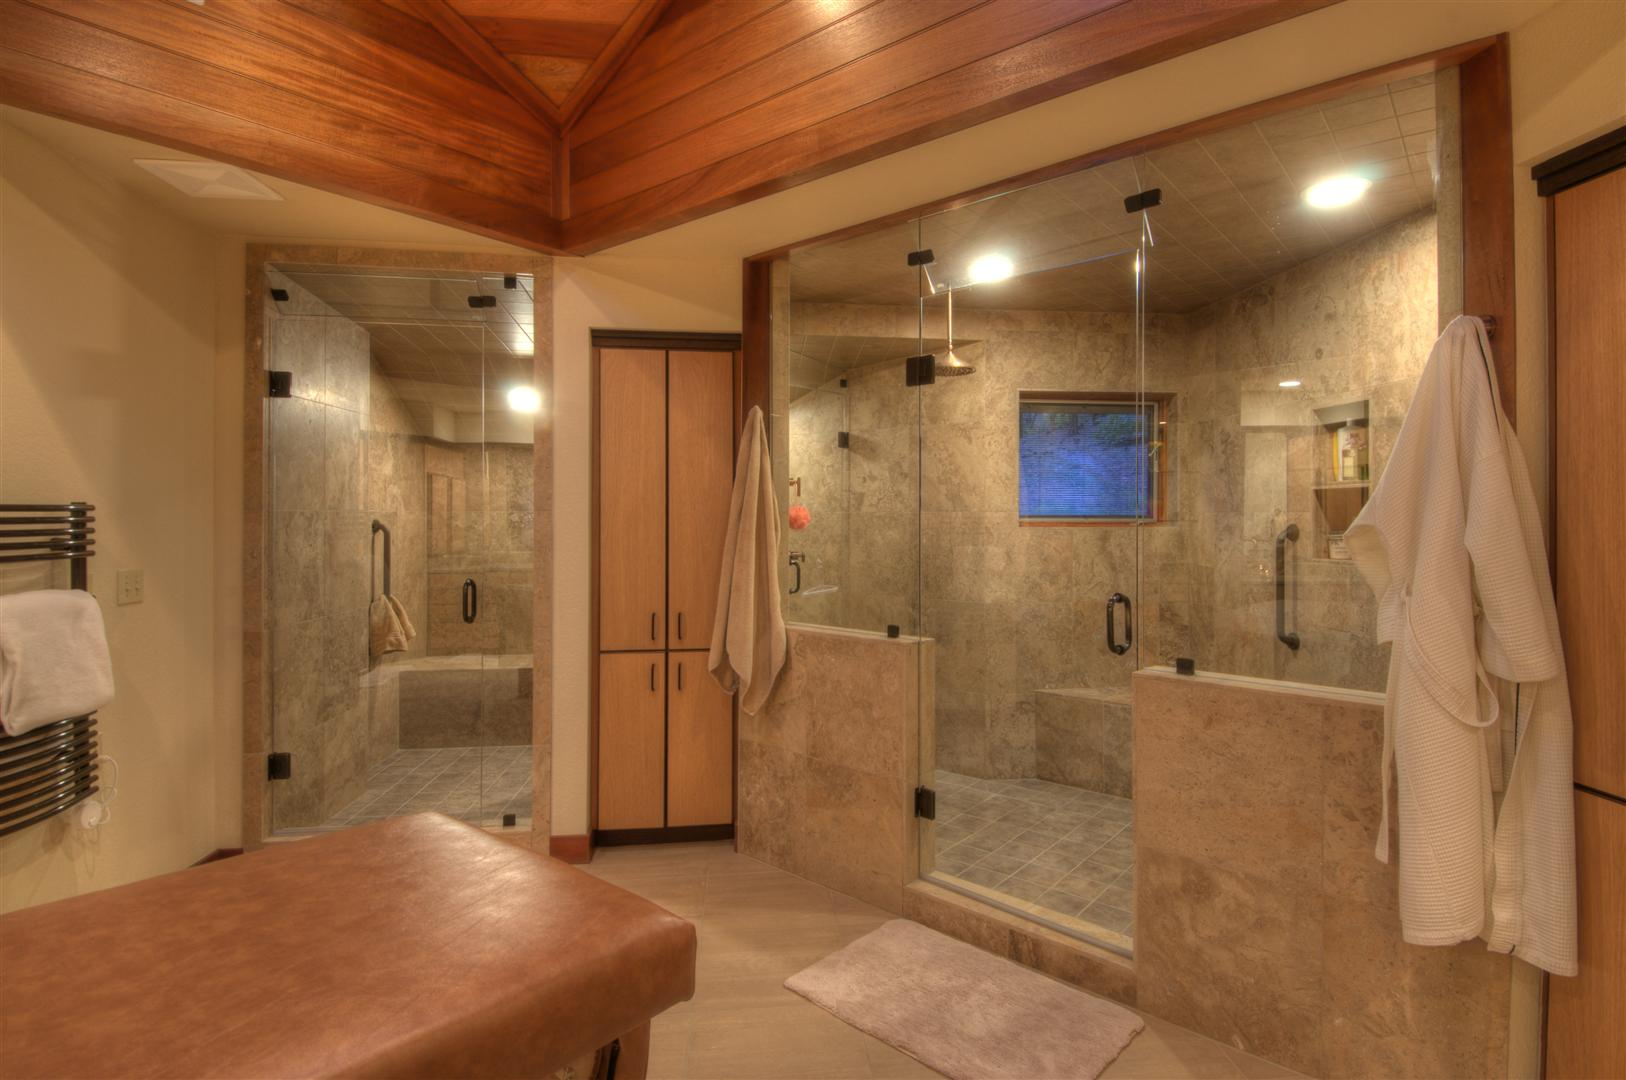 Completed Bathroom Design Construction Projects